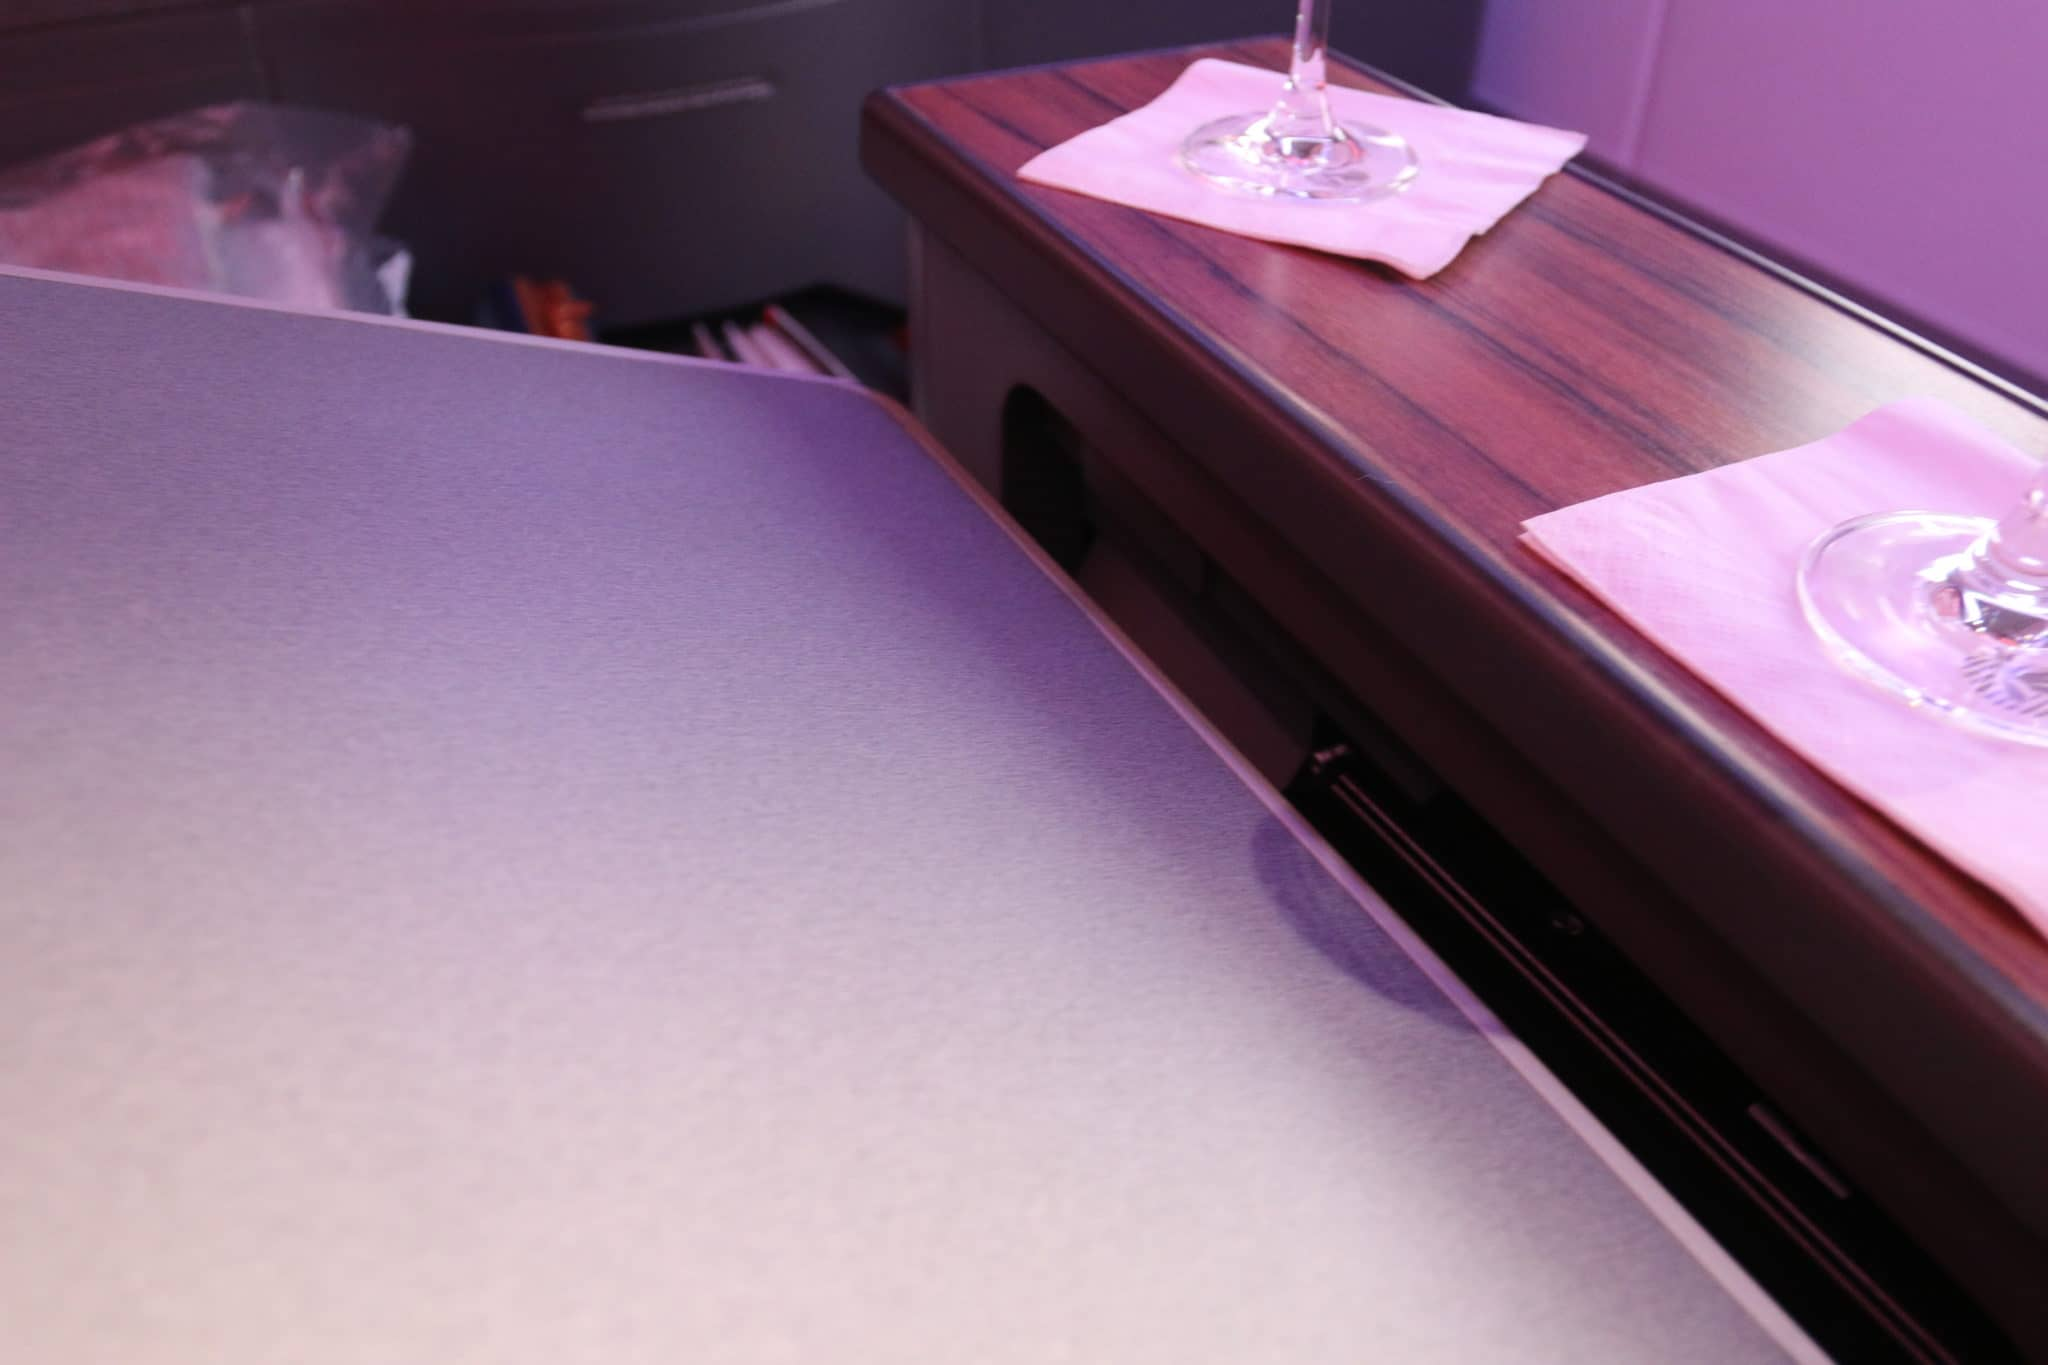 latam airlines business class a350 tisch verstauraum